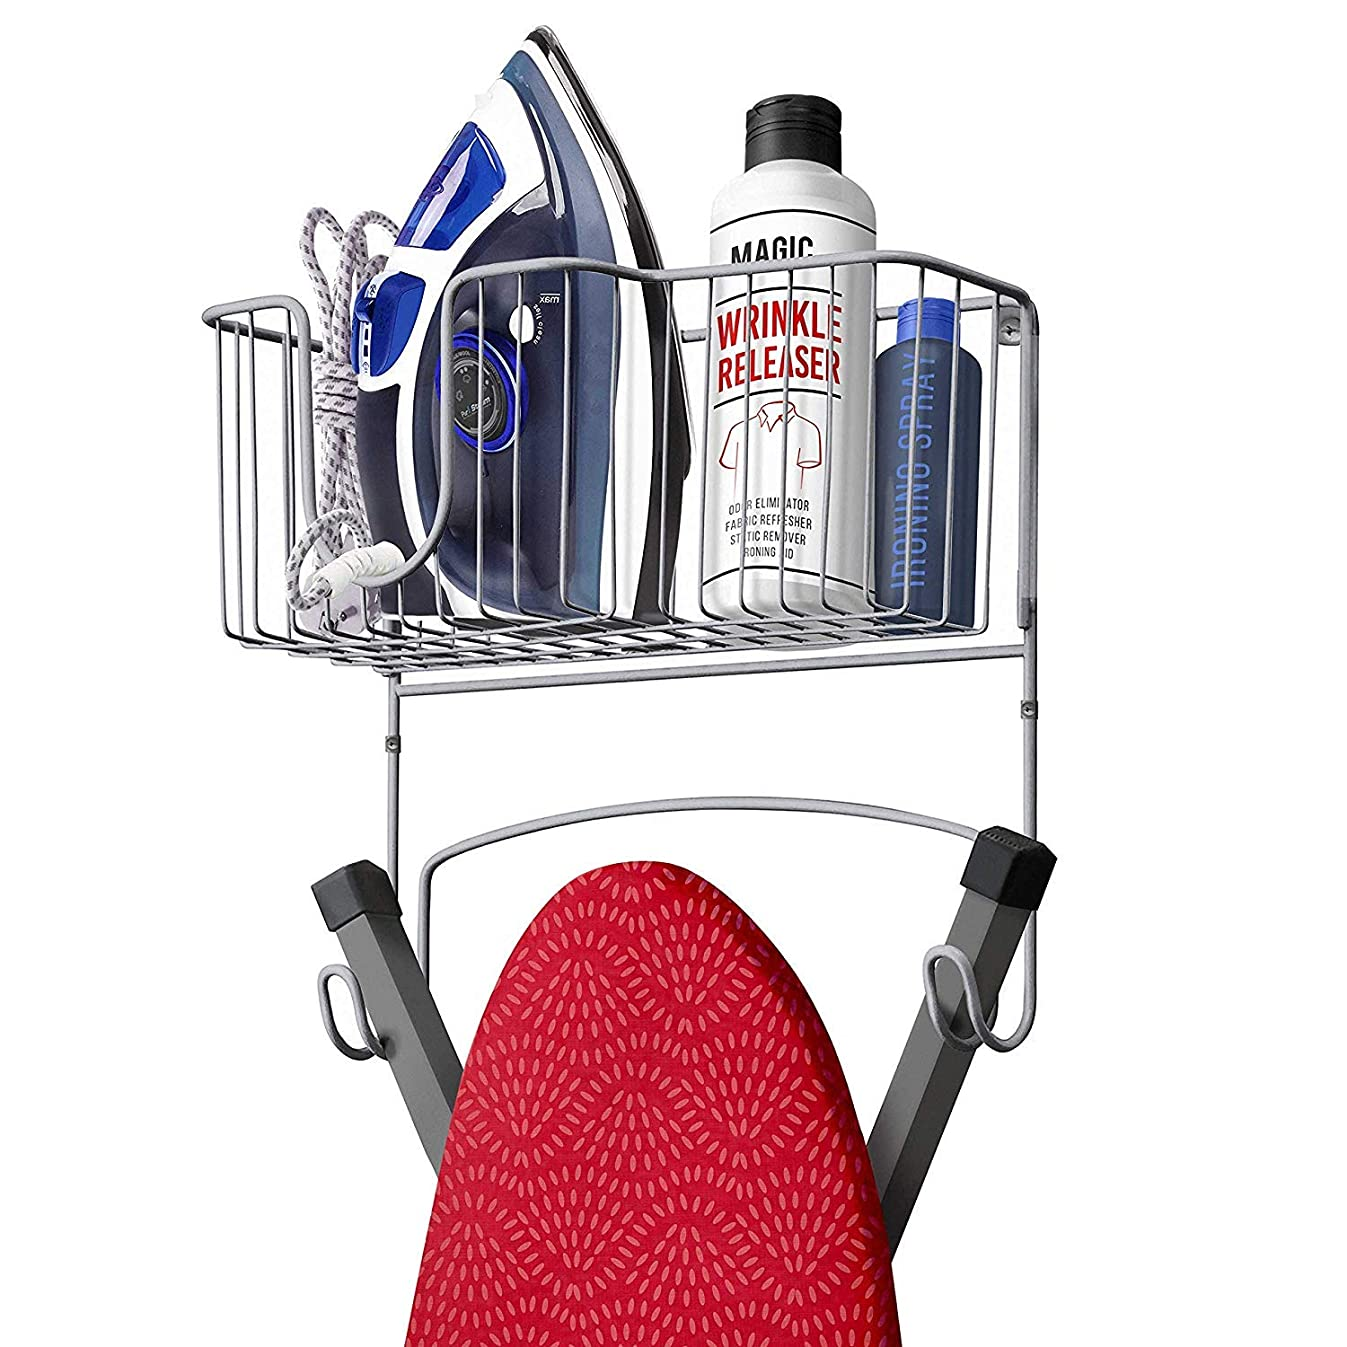 Mueller Ironing Board Hanger with Large Storage Basket and Hooks, Wall - Mount Organizer for Laundry Rooms, Heat - Resistant, Holds Iron, Ironing Board and Spray Bottles